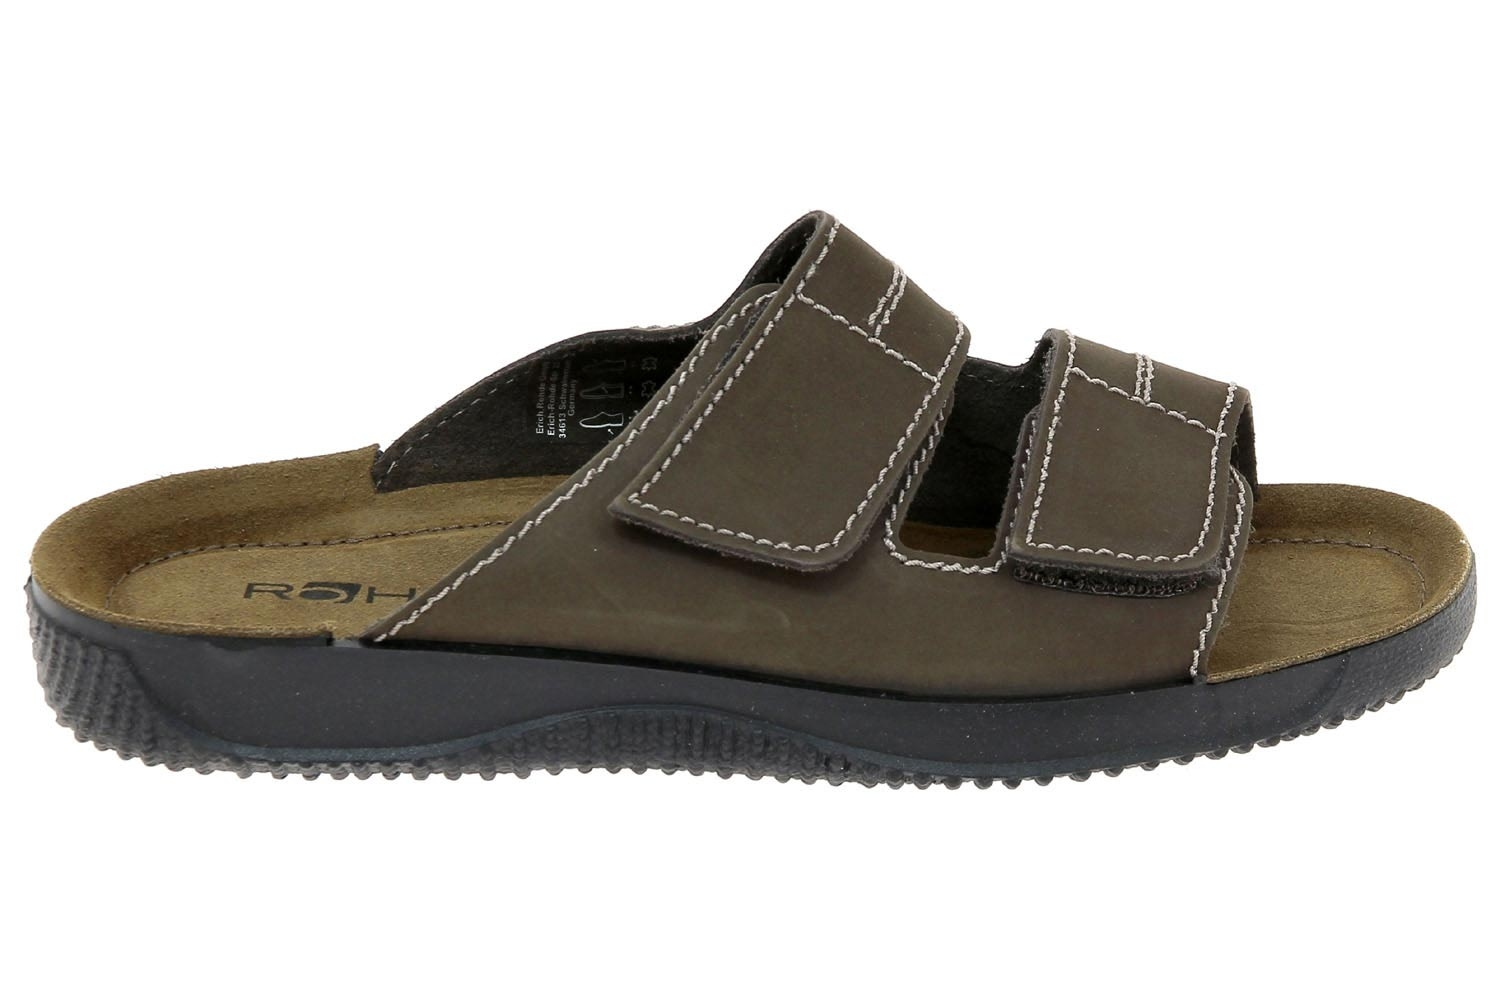 ba24dbbbc7057 Mules casual rohde marron 1987-72 g